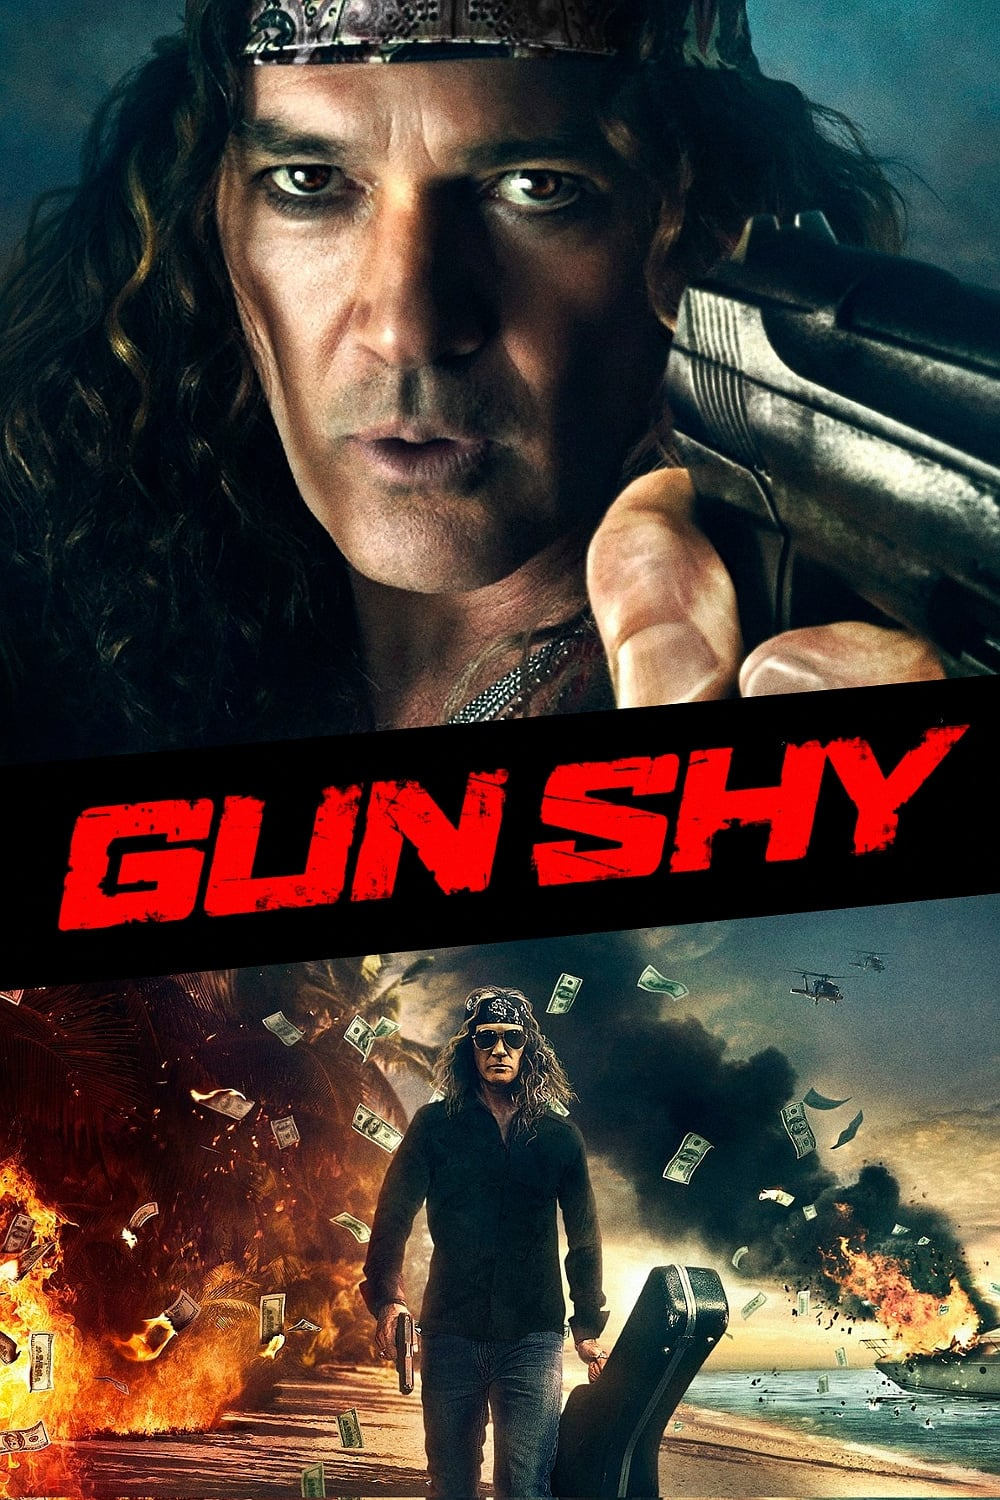 image for Gun Shy